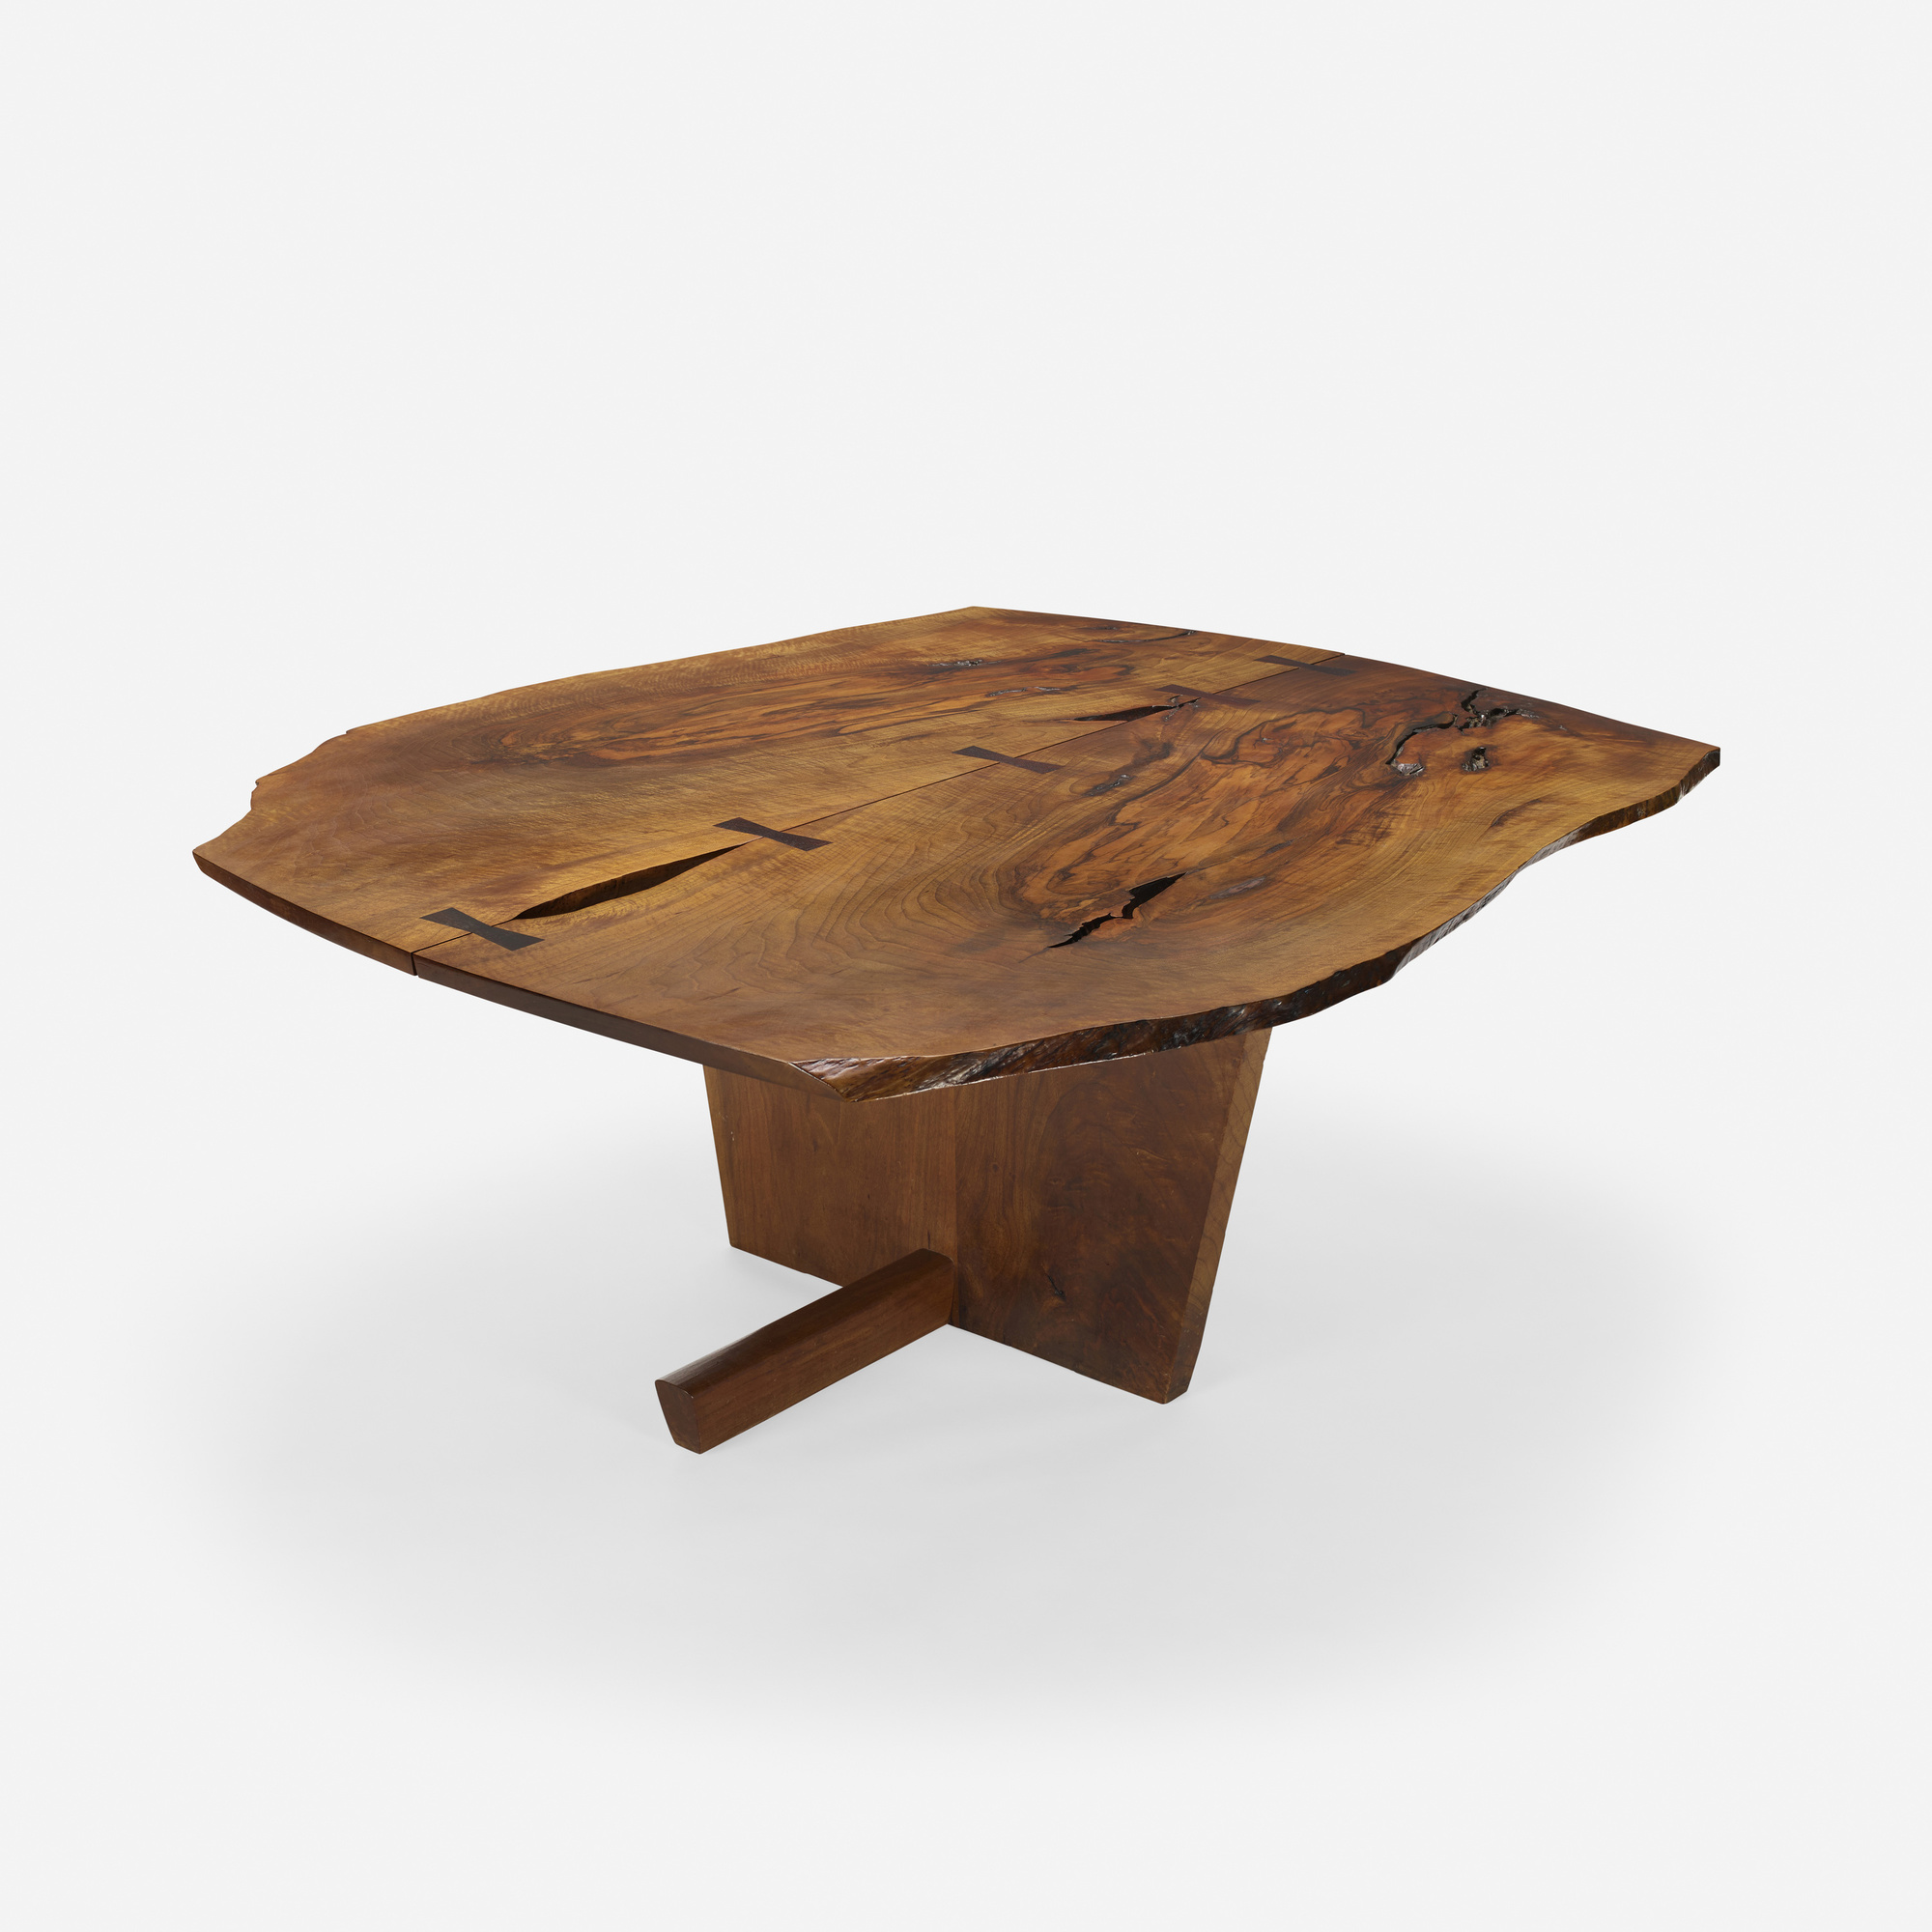 George Nakashima Dining Table Image Collections